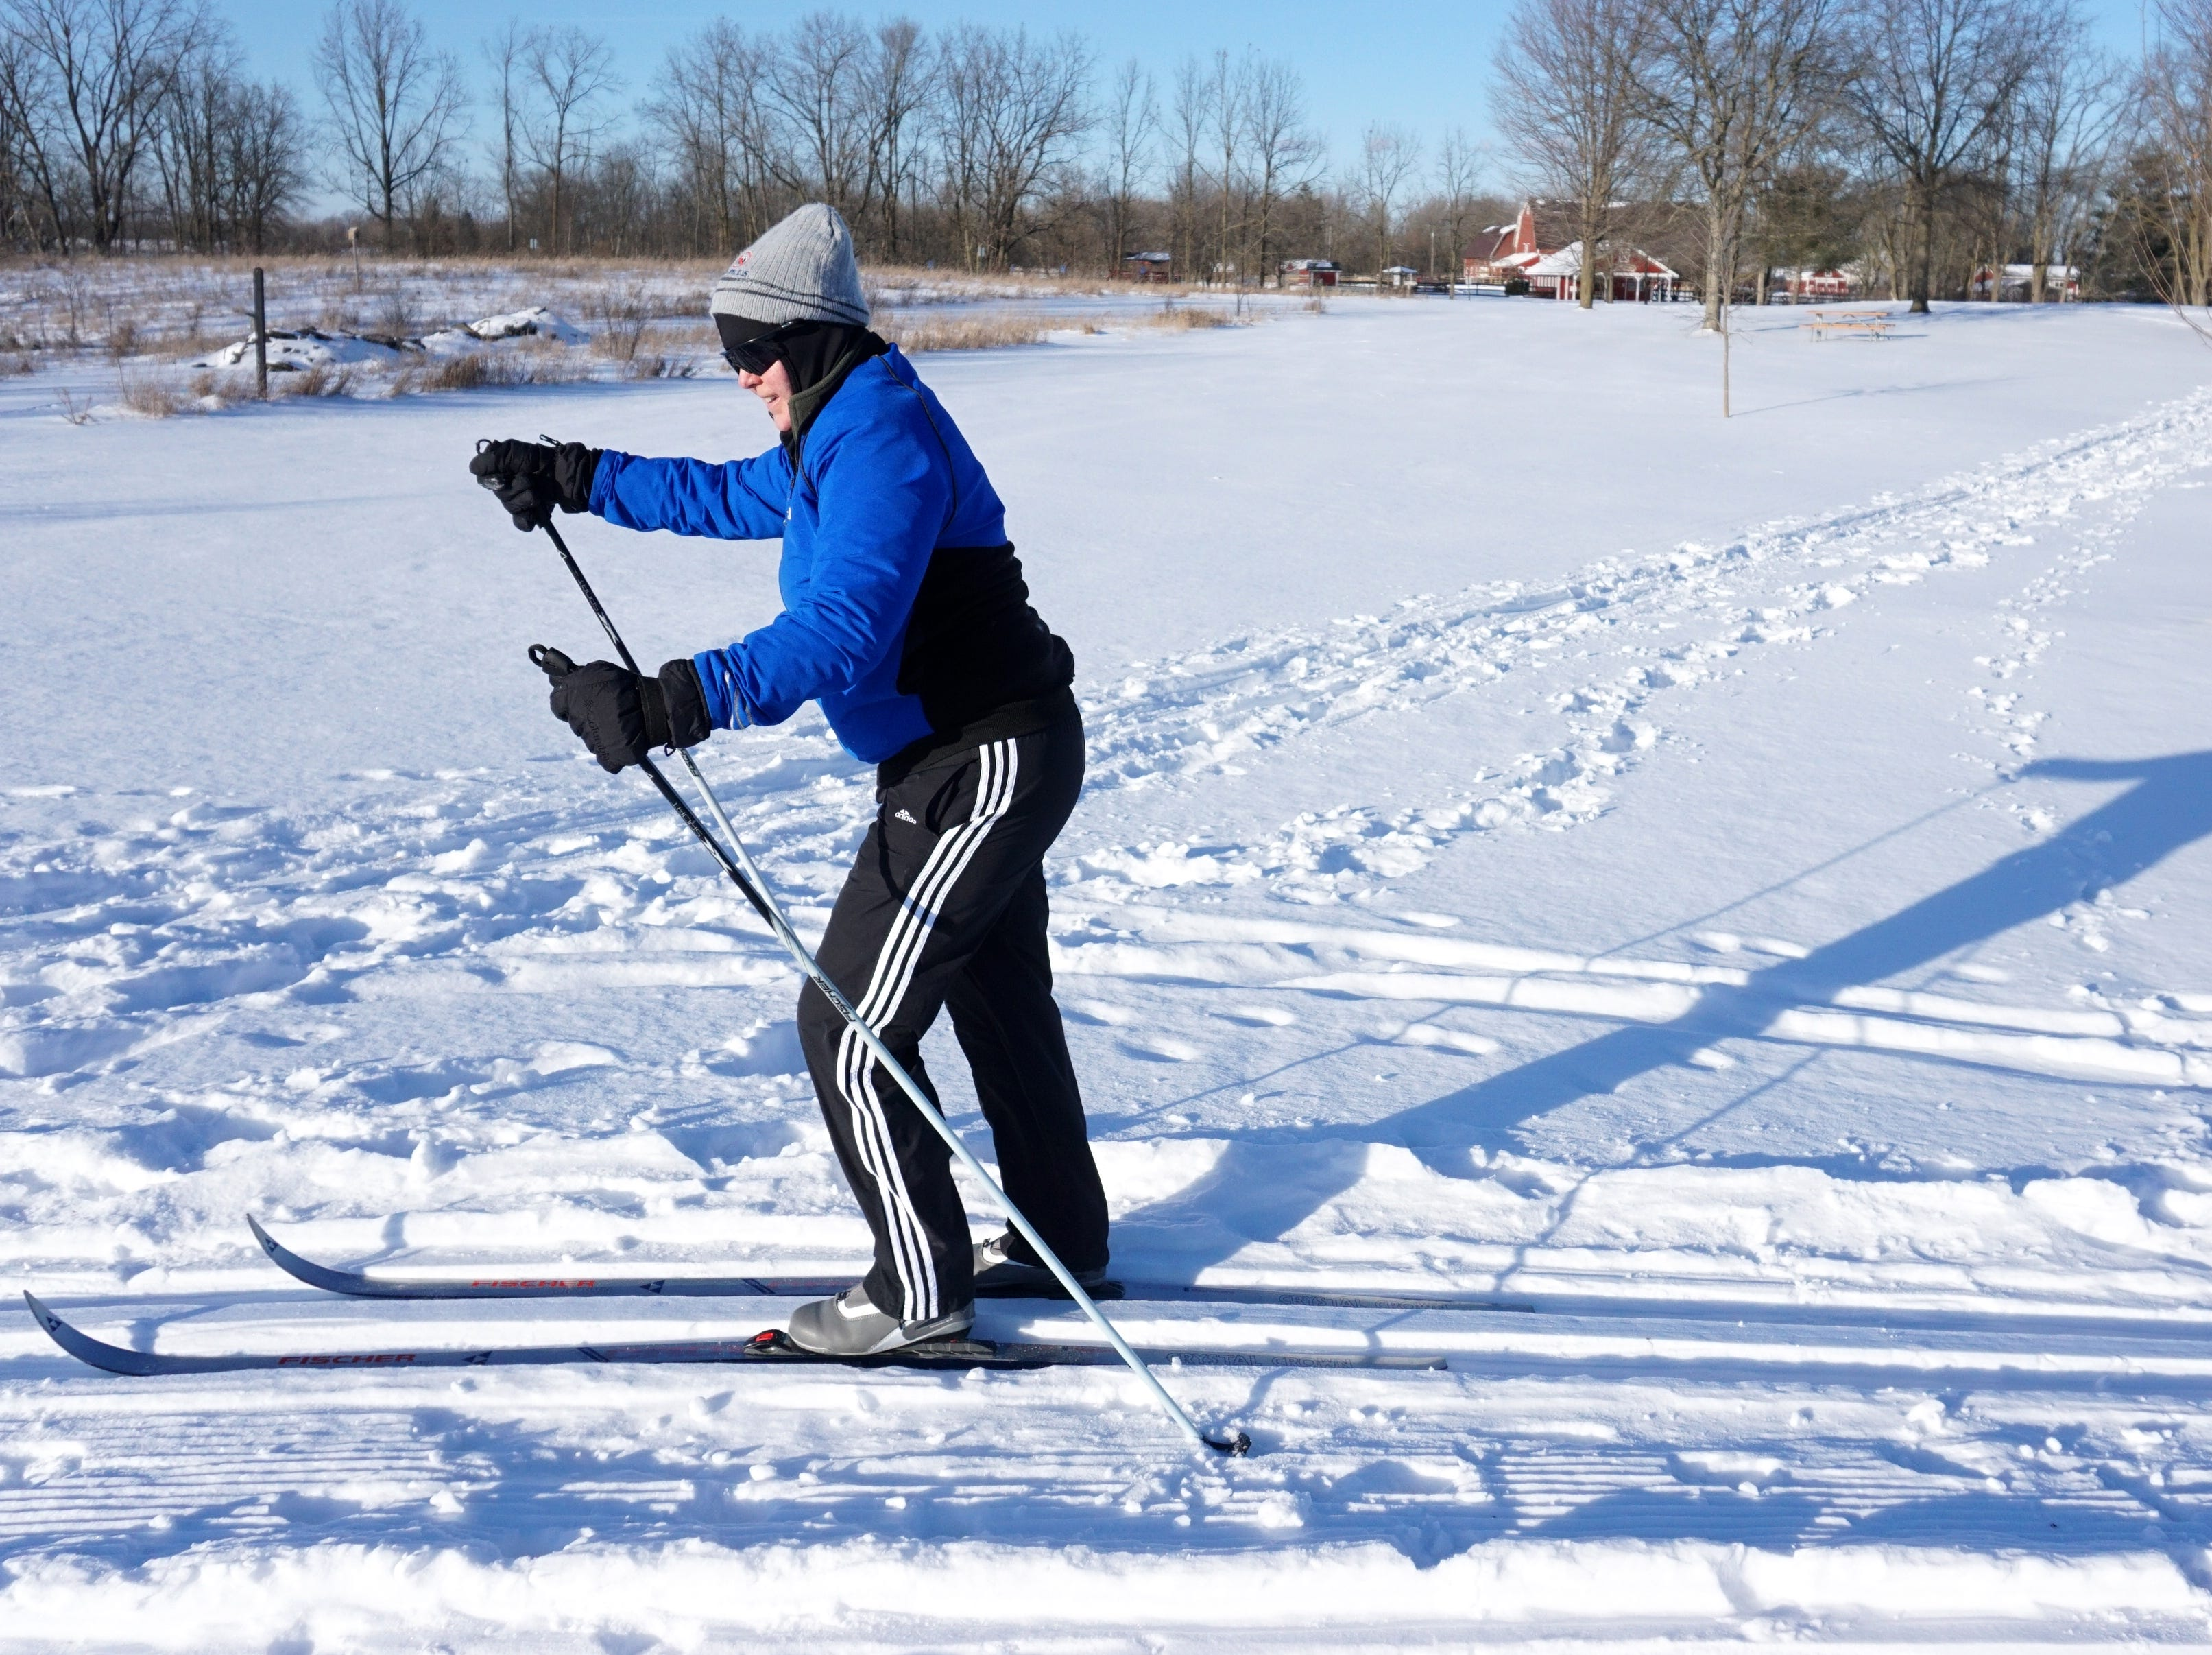 Sue Thompson, of Plymouth, takes to the trails of Northville's Maybury State Park on Jan. 31. Thompson said the skiing that day was much easier than recent days - when the wind made being outside so painful to any exposed skin. Maybury grooms its trails to benefit cross country skiiers, too, and on the weekends it keeps a warming fire going in its concession buidling off Eight Mile Road - for those hitting the trails.